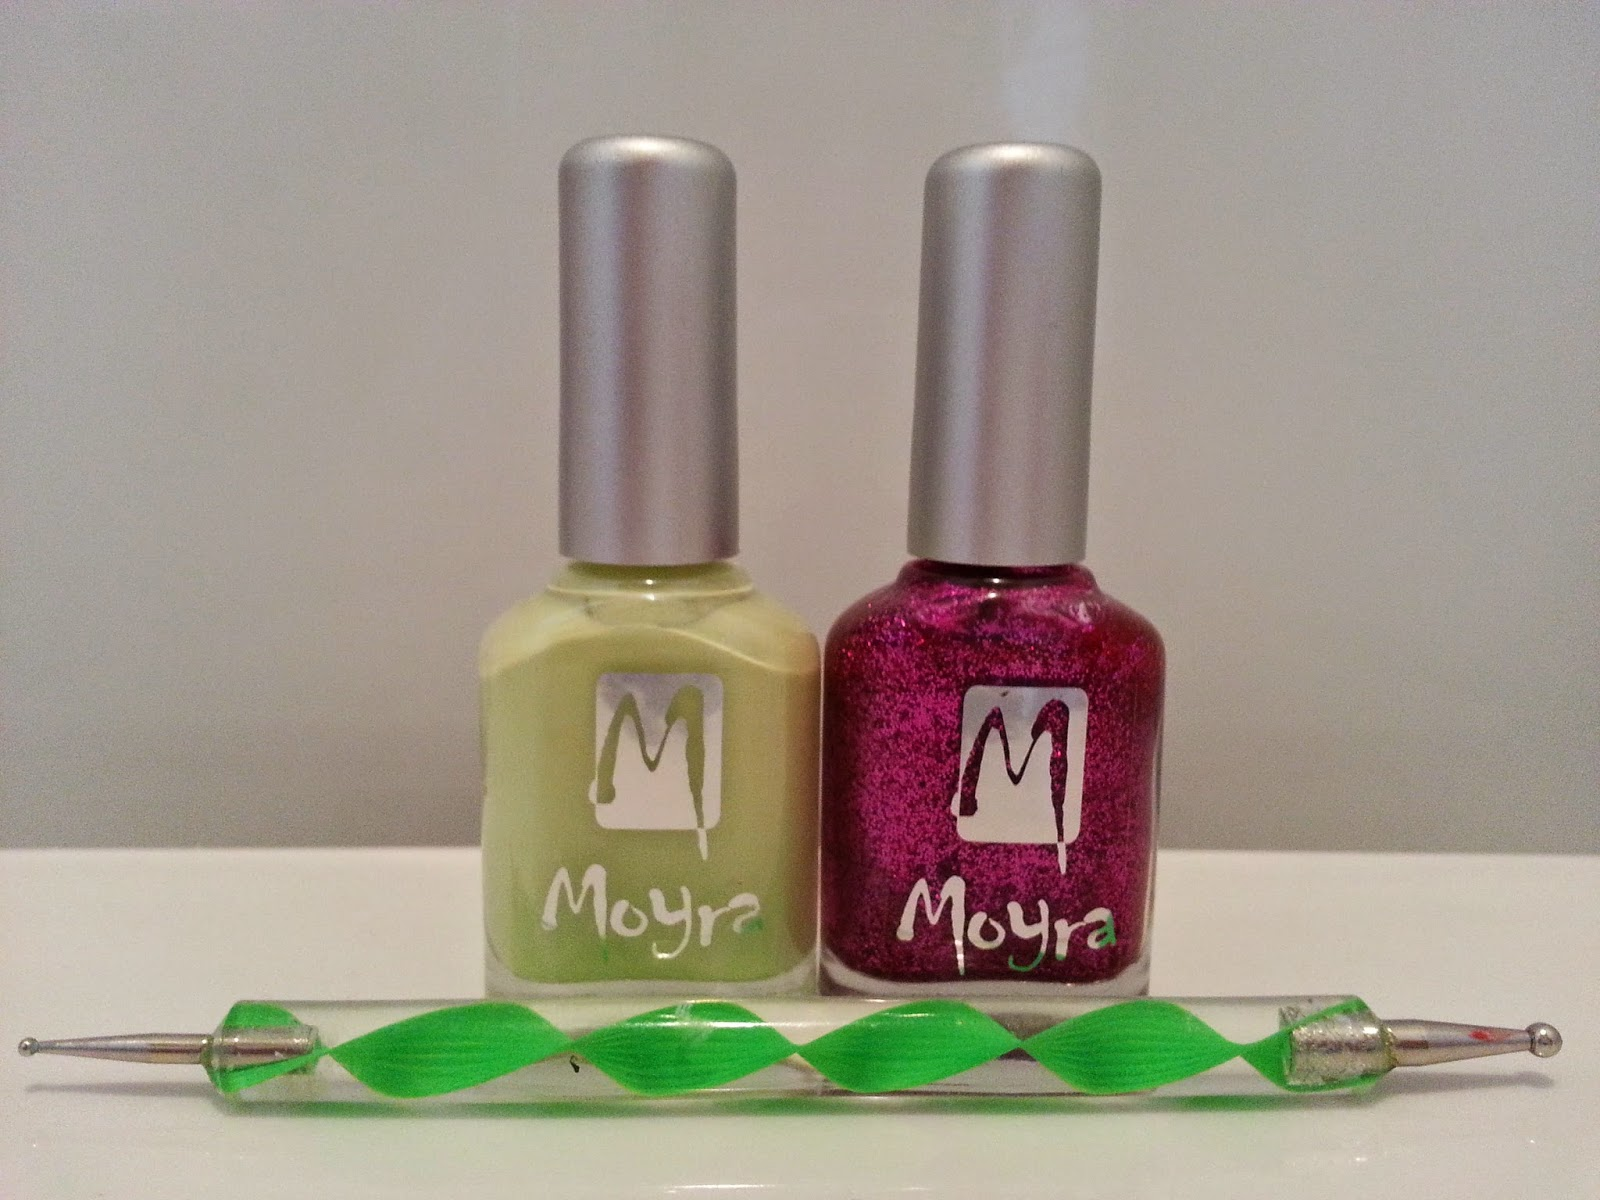 moyra-uk-nail-polish-nail-art